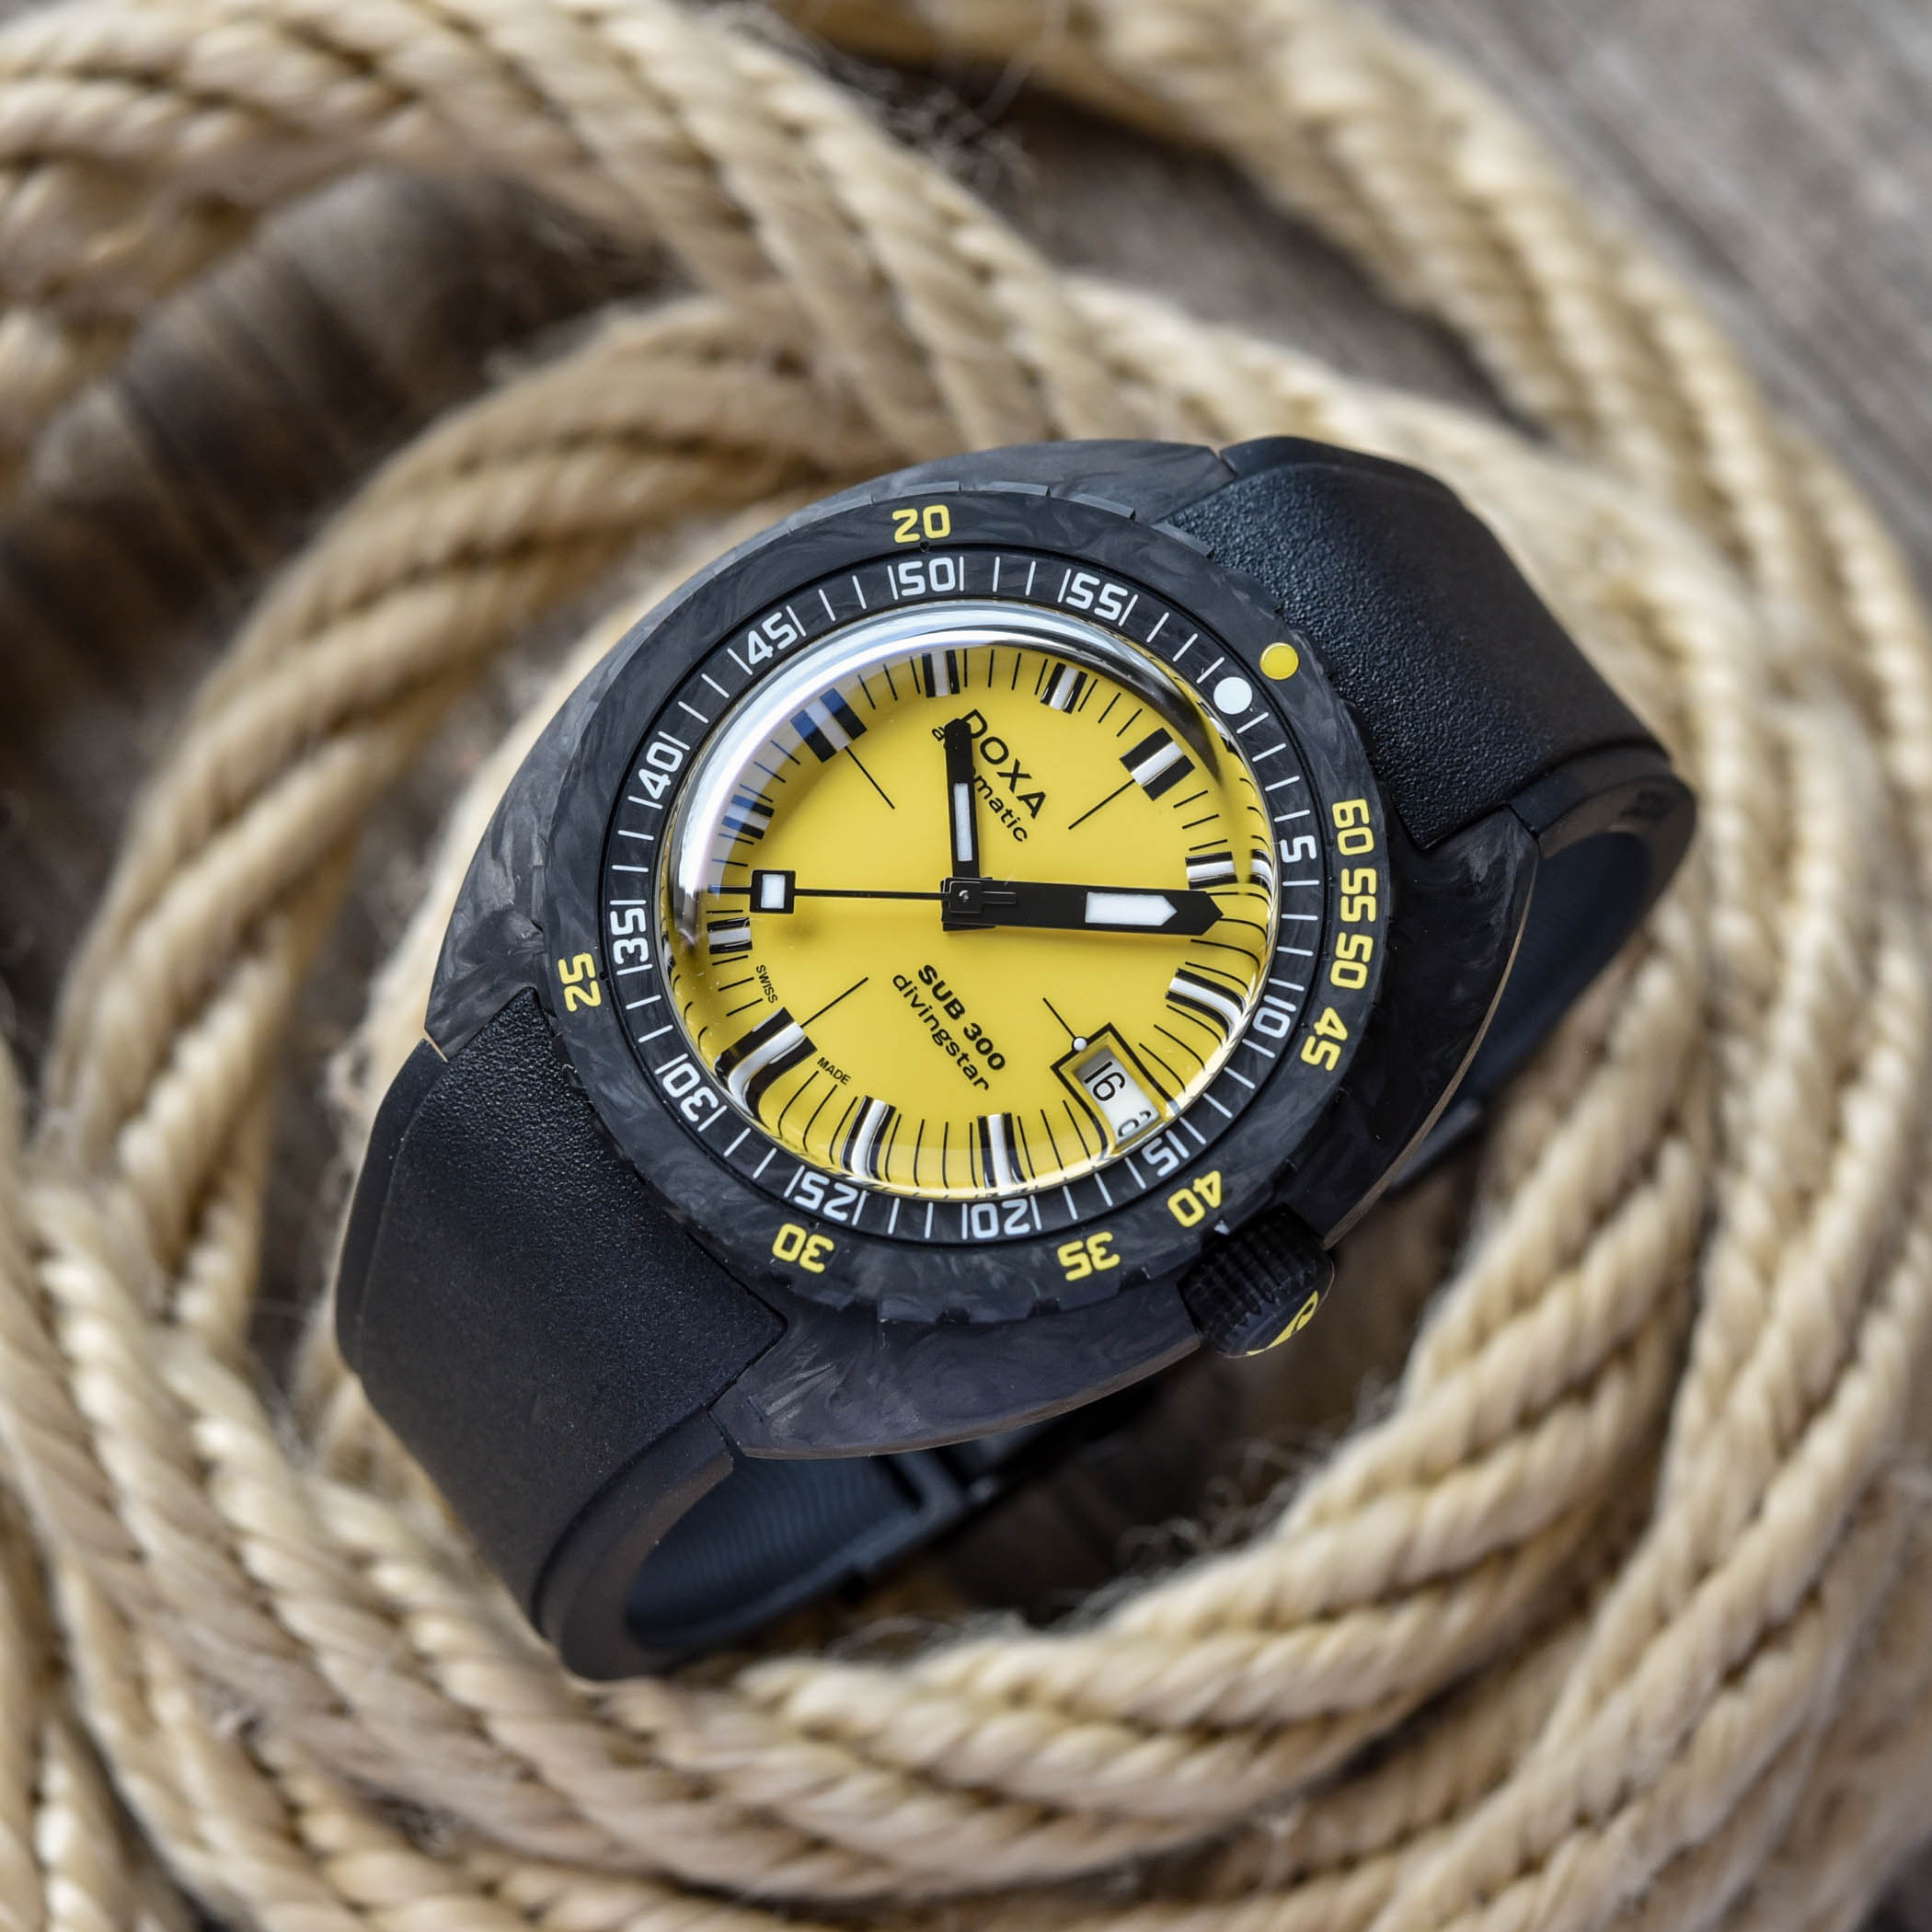 Doxa-SUB-300-Carbon-COSC-Collection-2021-review-8.jpg